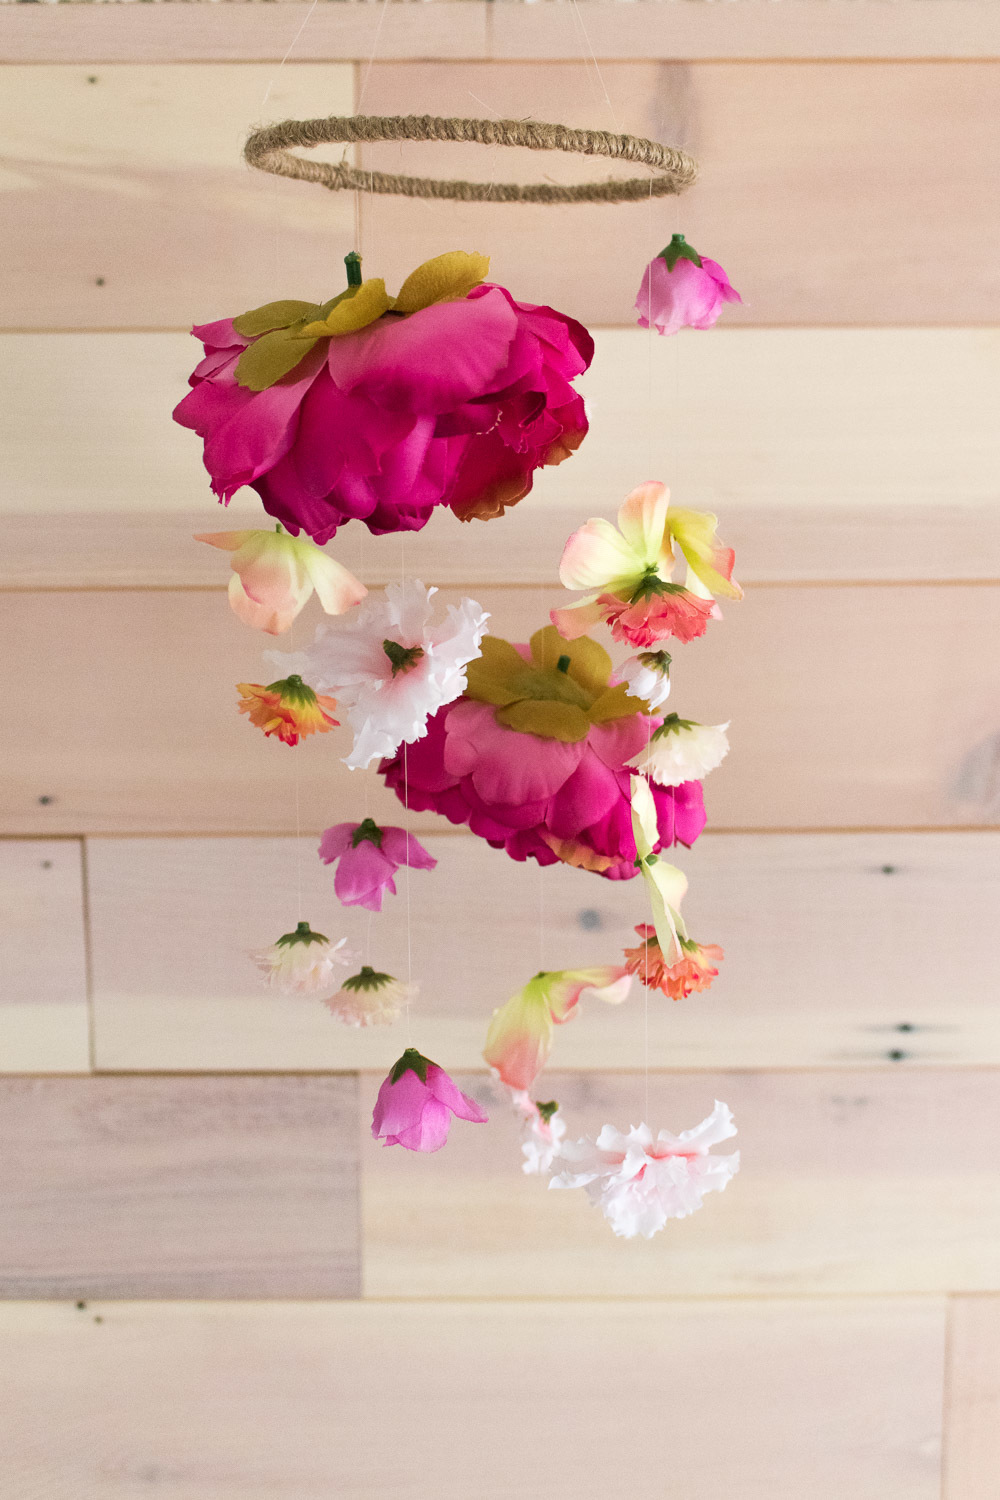 How to Make A Floral Mobile for Any Room